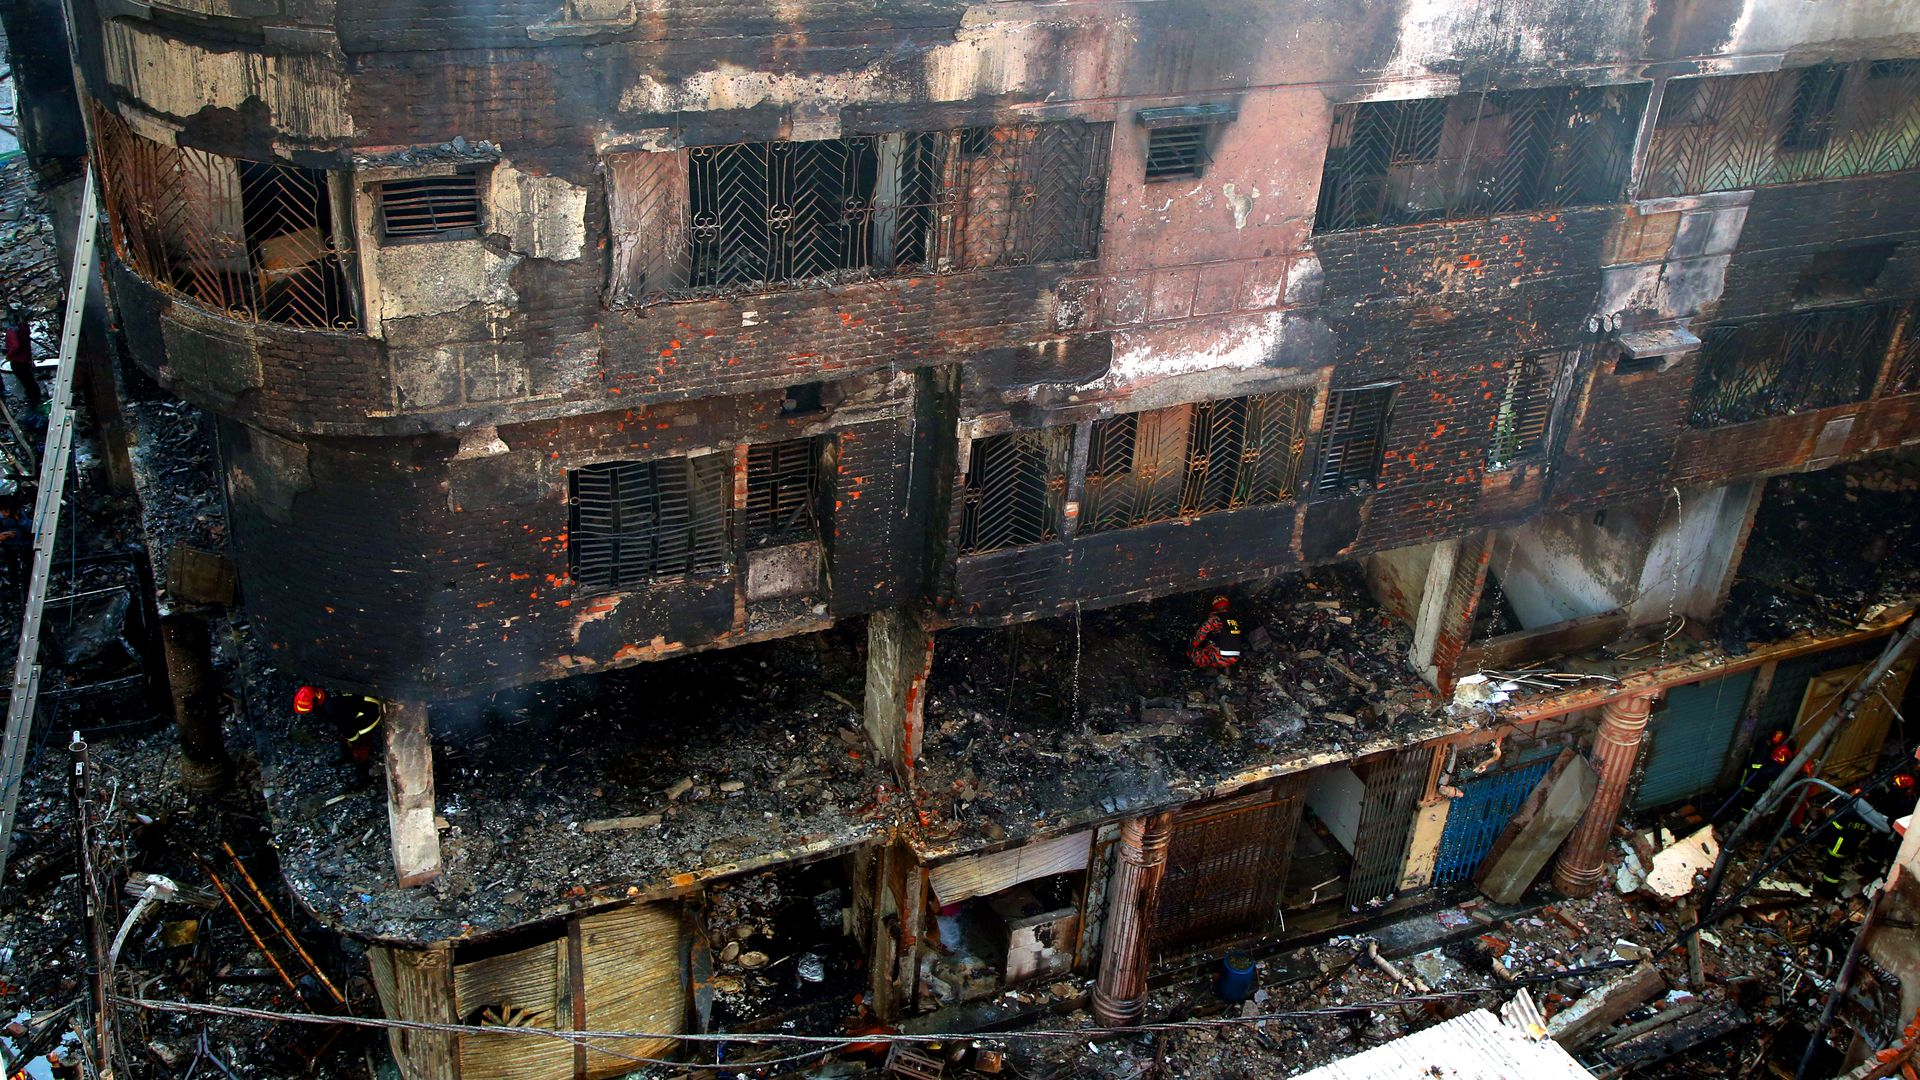 Charred building in bangladesh's captital